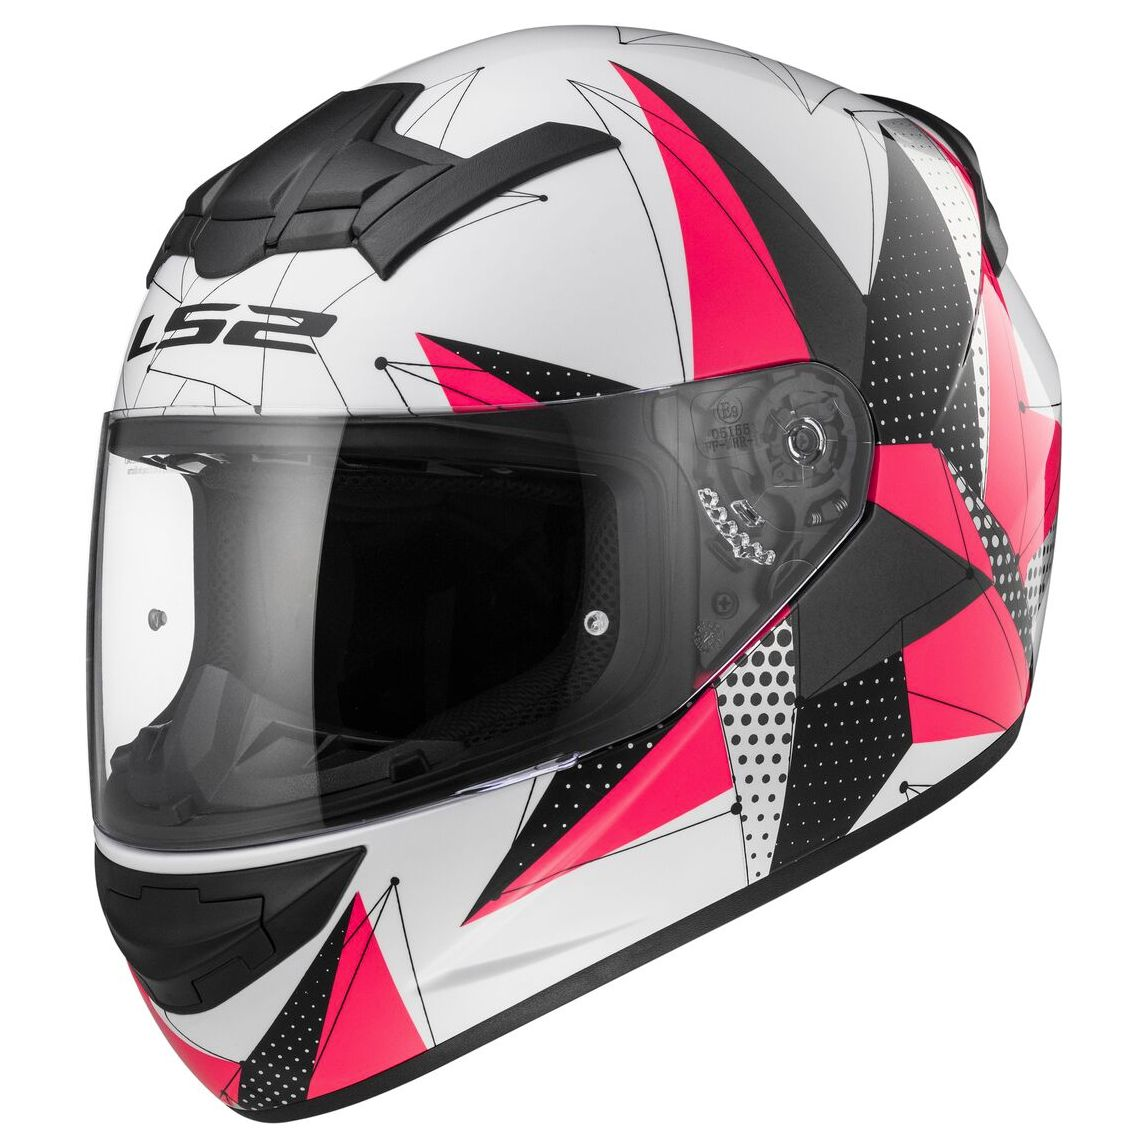 Casque Ls2 Ff352 Rookie Brillant